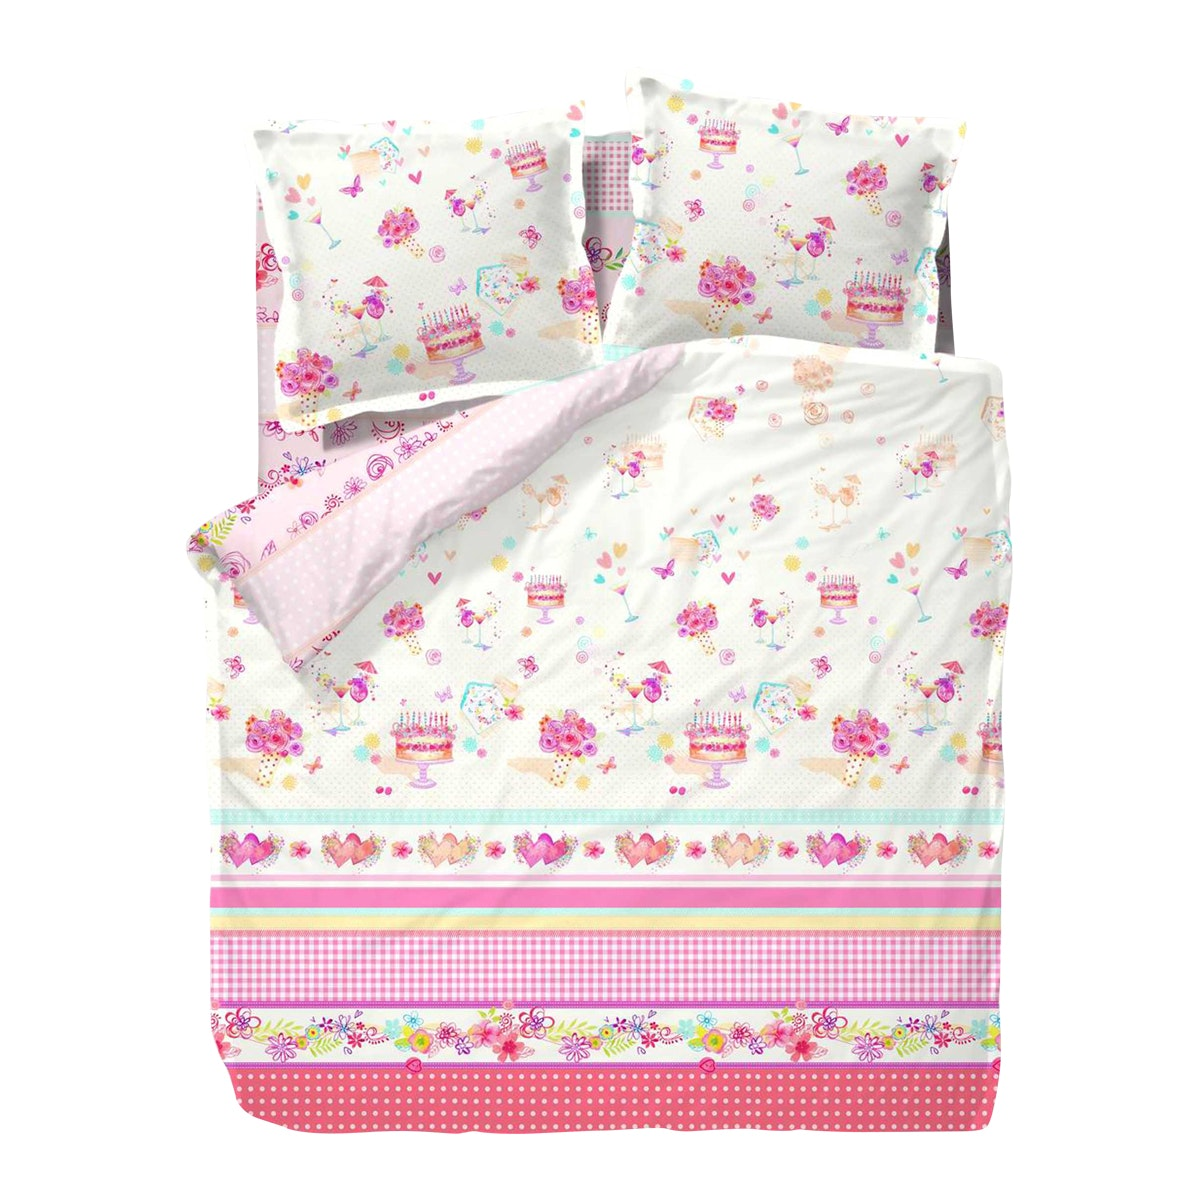 Kanaya Nina MG Heidi Bed Sheet Set (Queen) 160x200x30cm